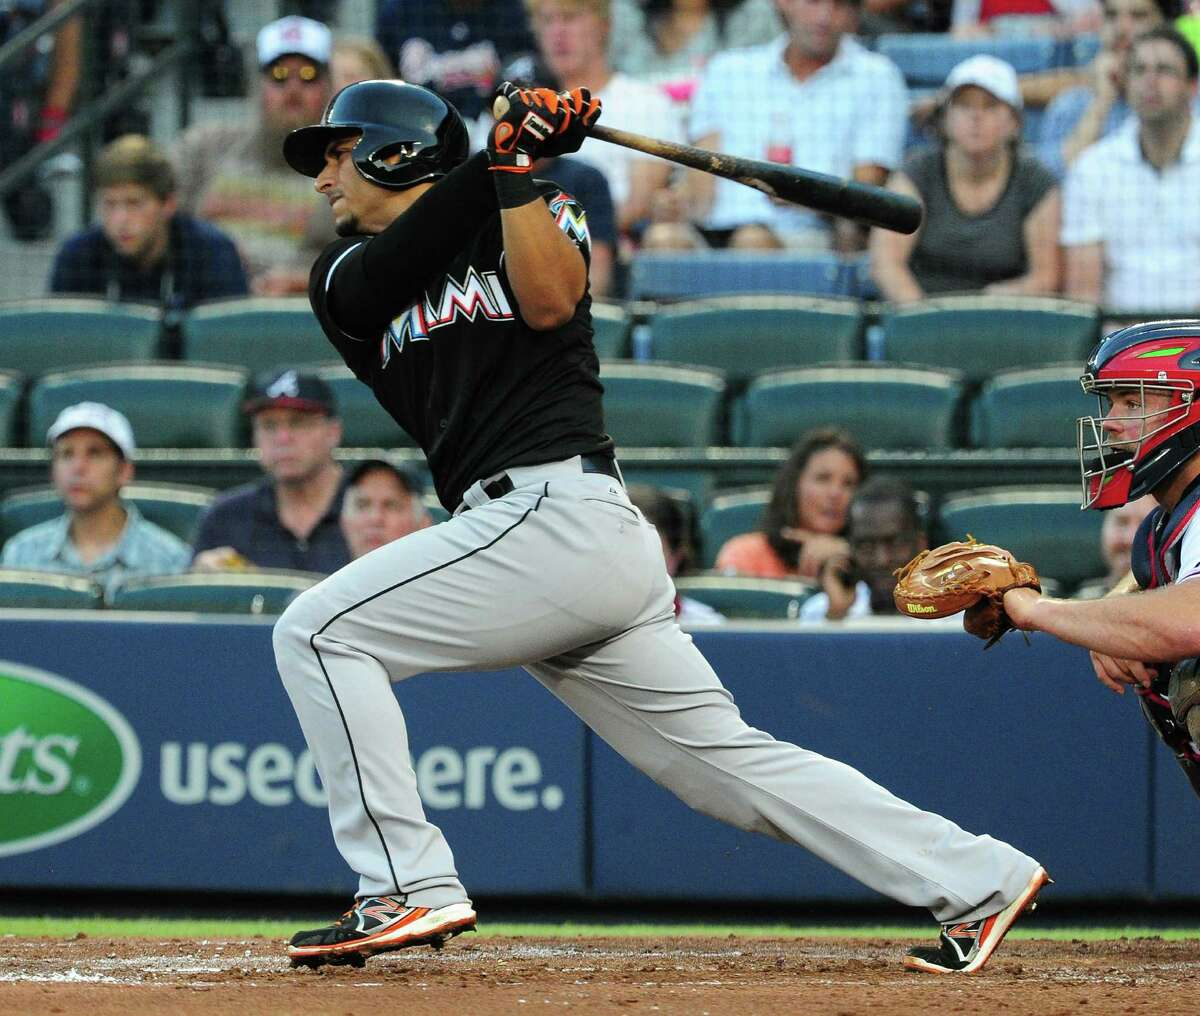 ATLANTA, GA - JULY 22: Donovan Solano #17 of the Miami Marlins hits a fourth inning double against the Atlanta Braves at Turner Field on July 22, 2014 in Atlanta, Georgia. (Photo by Scott Cunningham/Getty Images) ORG XMIT: 477586667